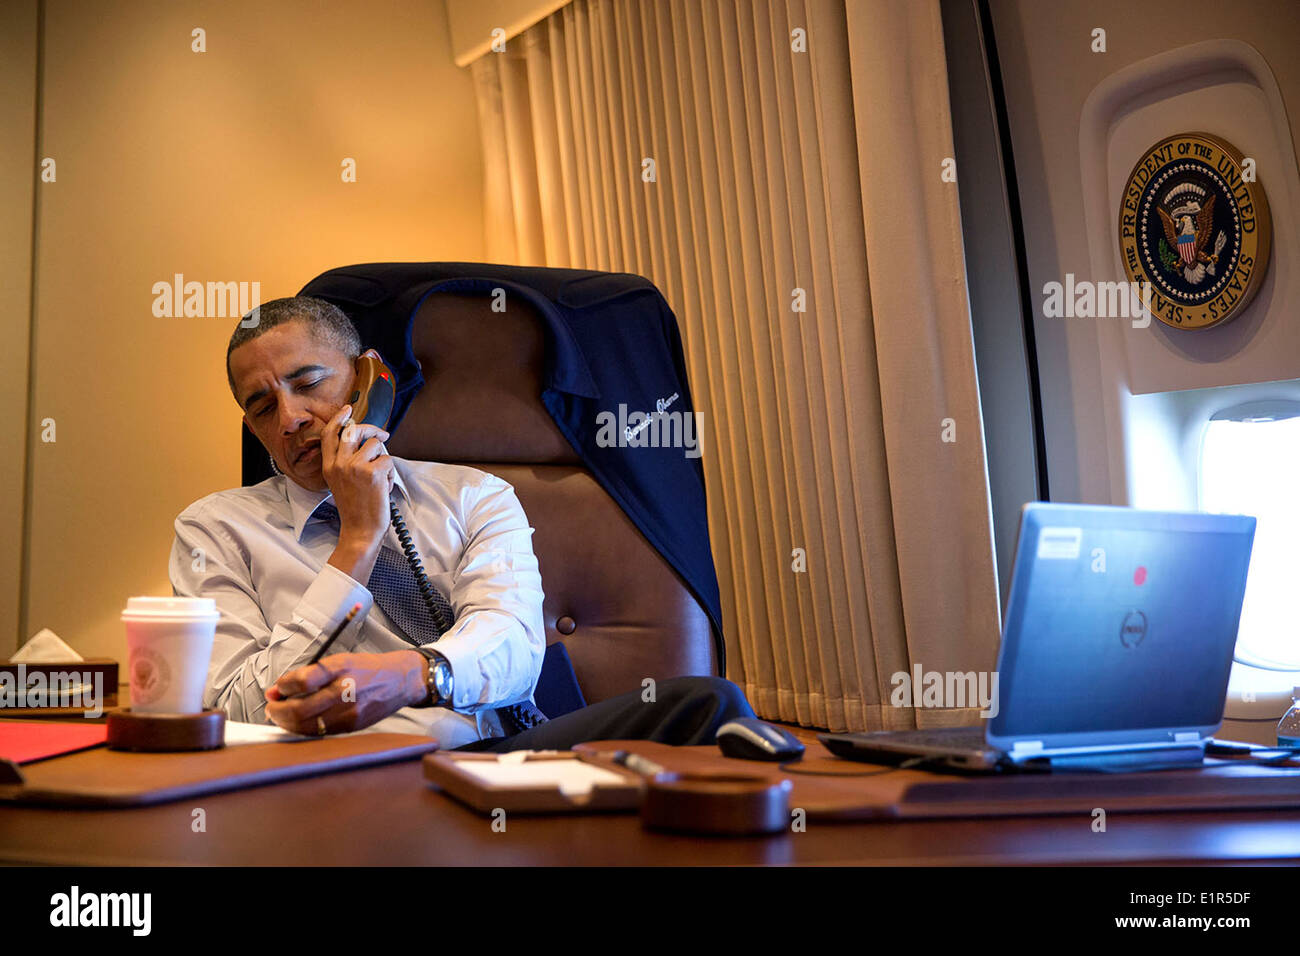 US President Barack Obama talks on the phone in his office aboard Air Force One April 10, 2014 on a flight back to Washington, DC. - Stock Image